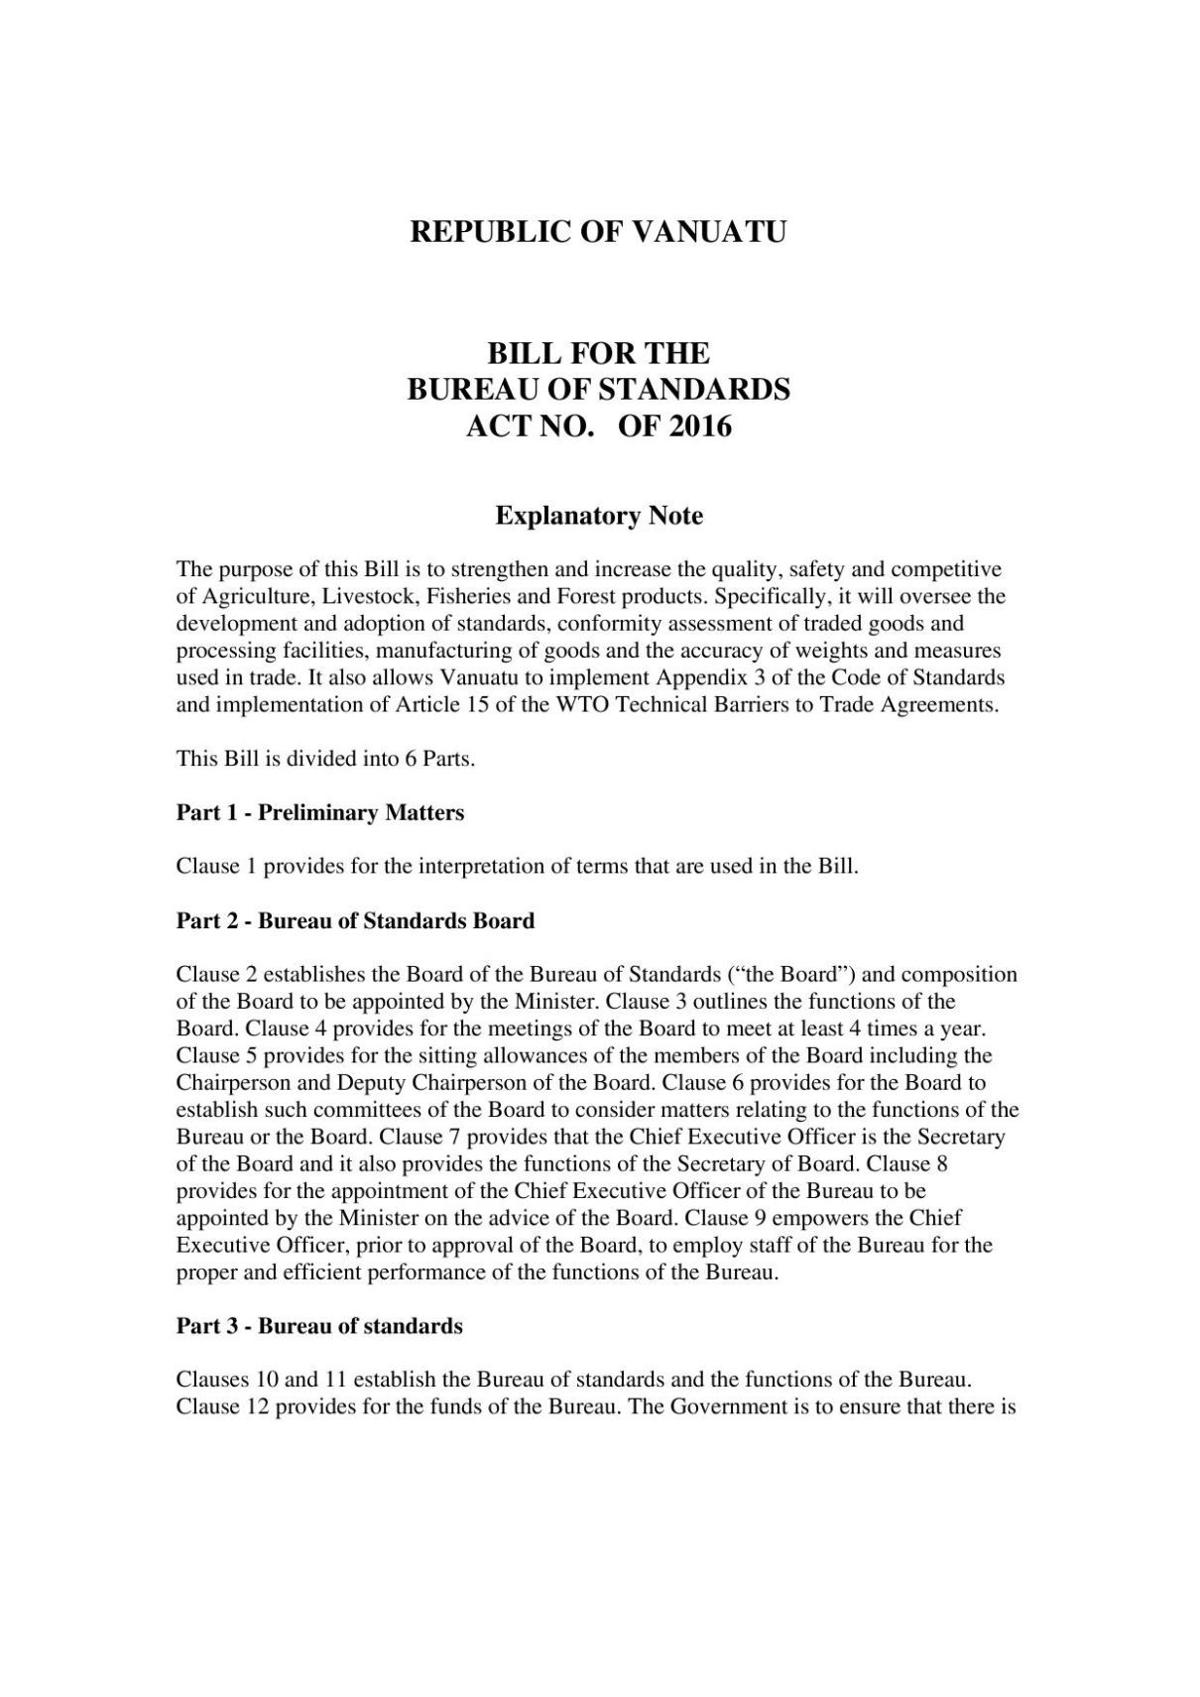 Bill for the Bureau of Standards Act No. of 2016.pdf